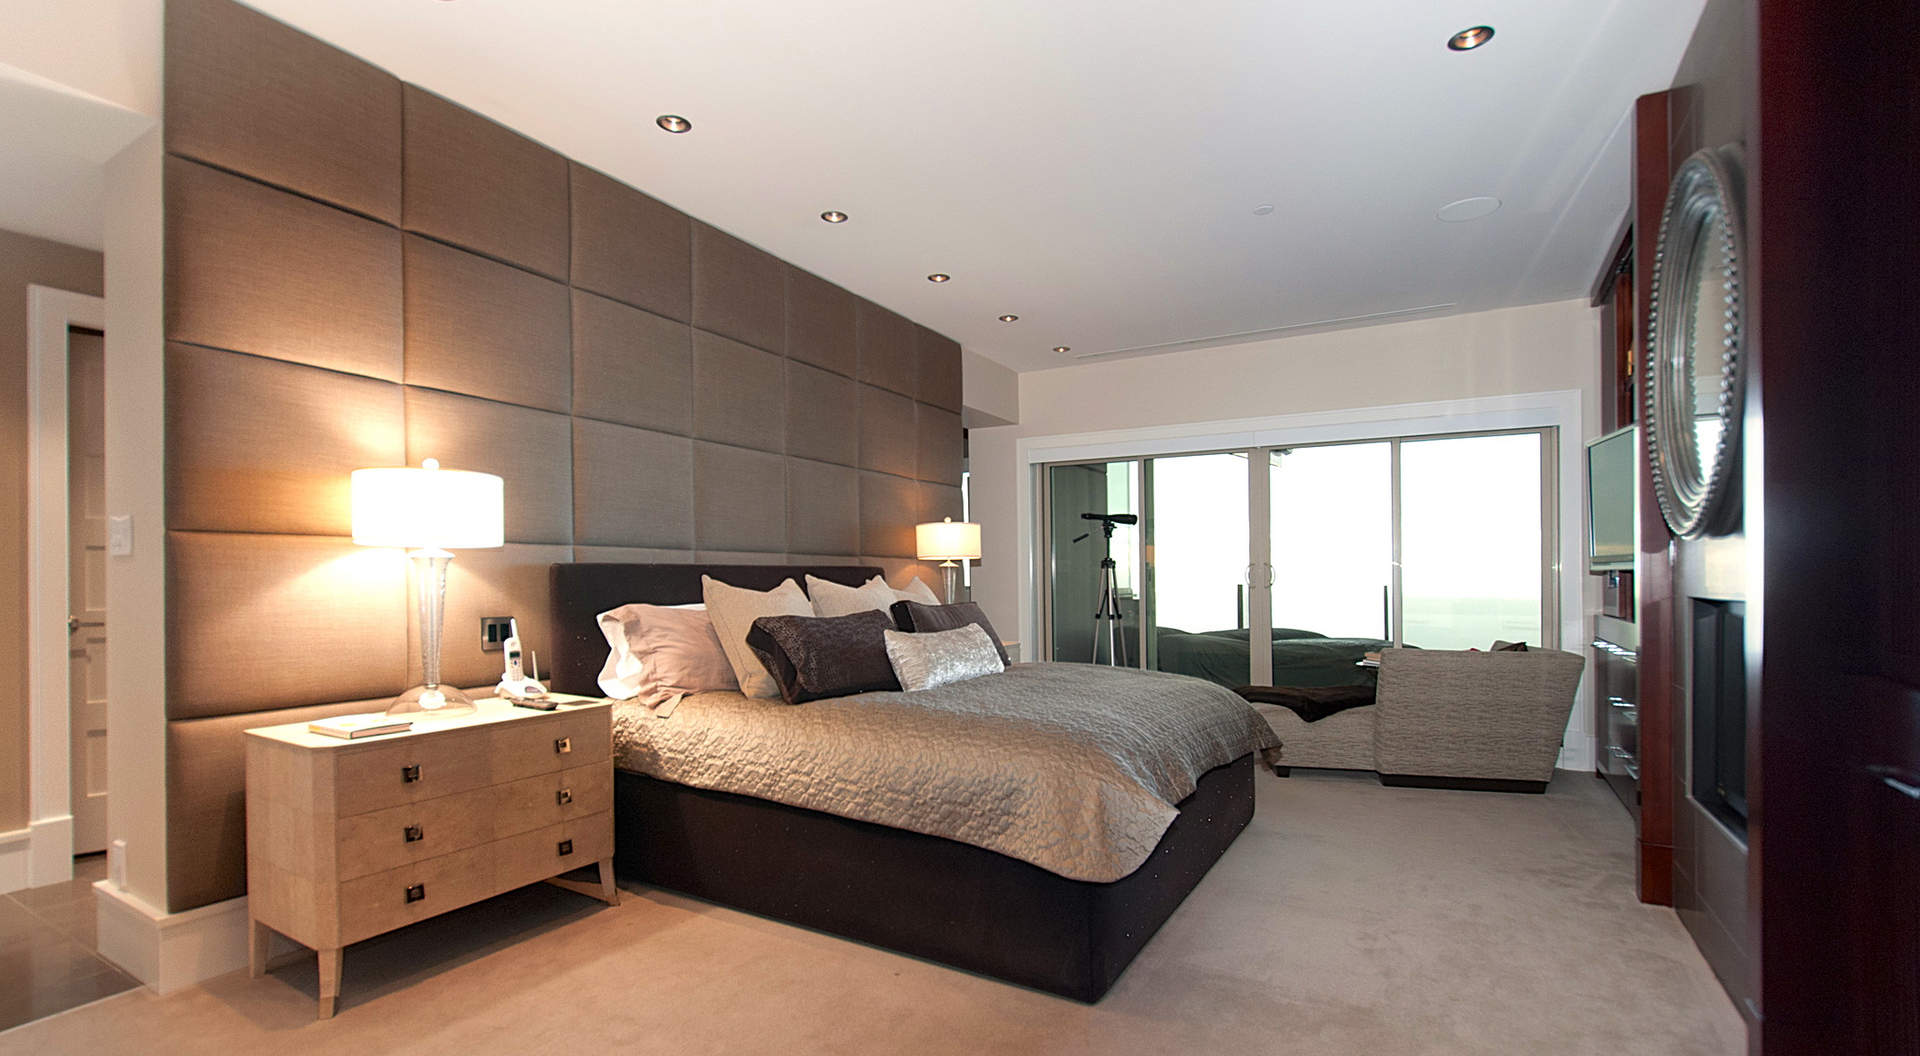 Penthouse master bedroom interior design ideas for Master bedroom designs images